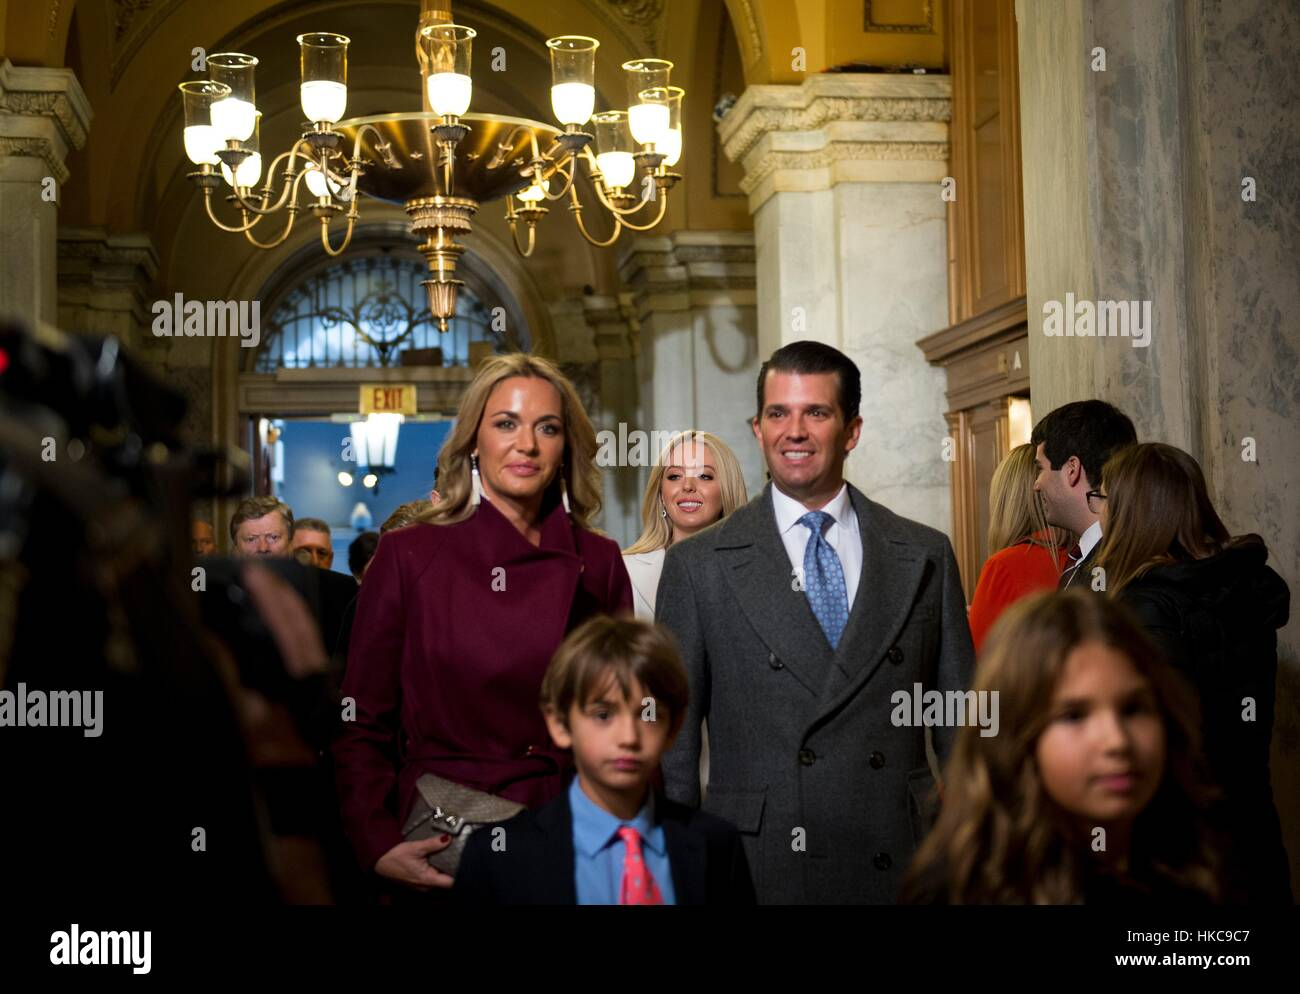 U.S. presidential son Eric Trump and wife Vanessa Trump arrive at the U.S. Capitol with his family for the 58th - Stock Image